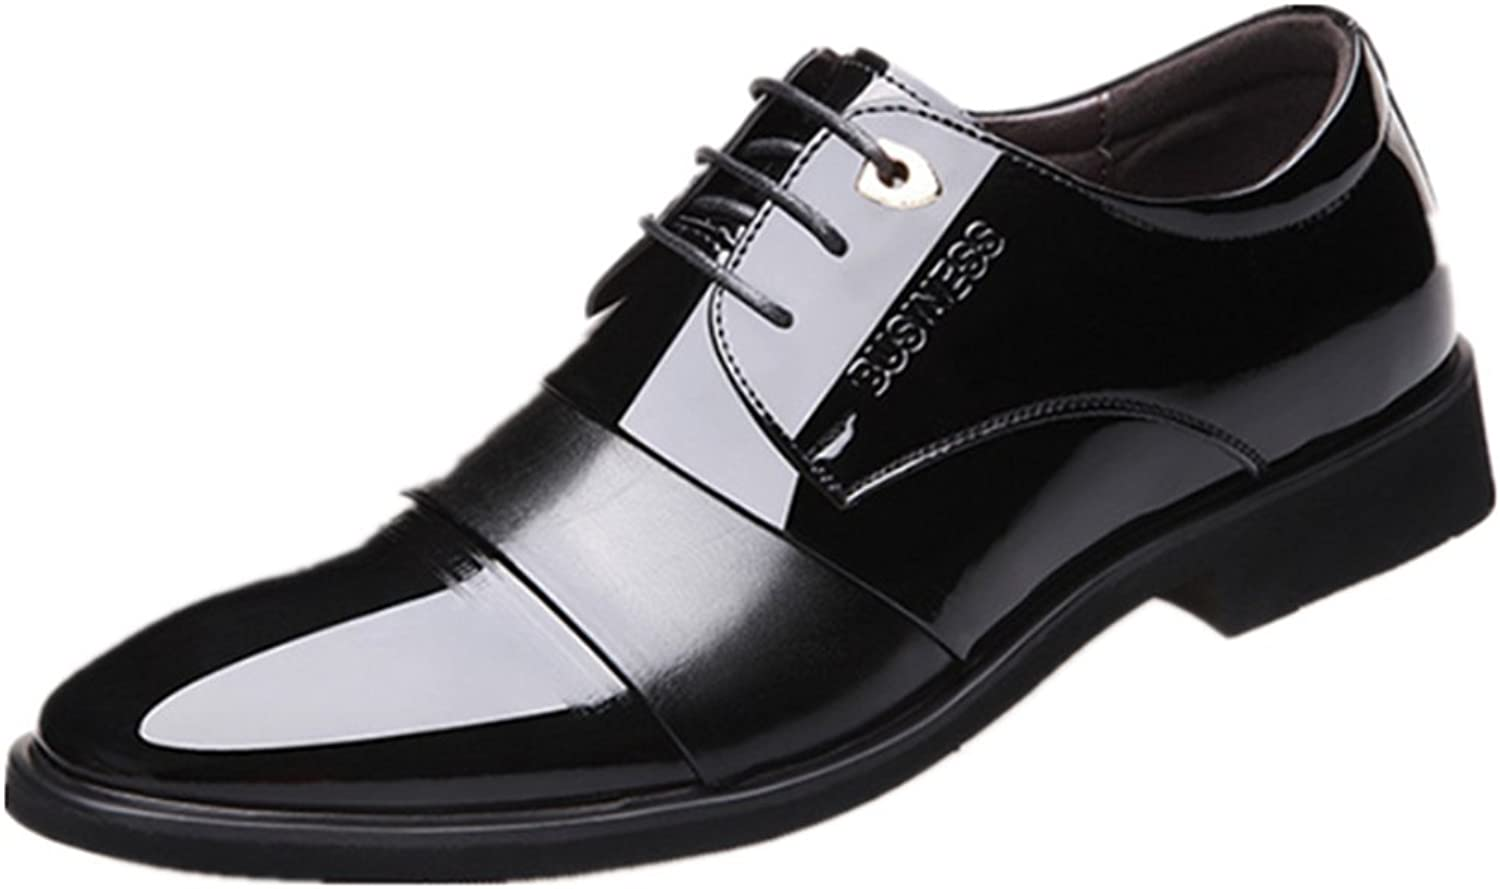 Punk family Men's Business British Dress Tip Leather shoes